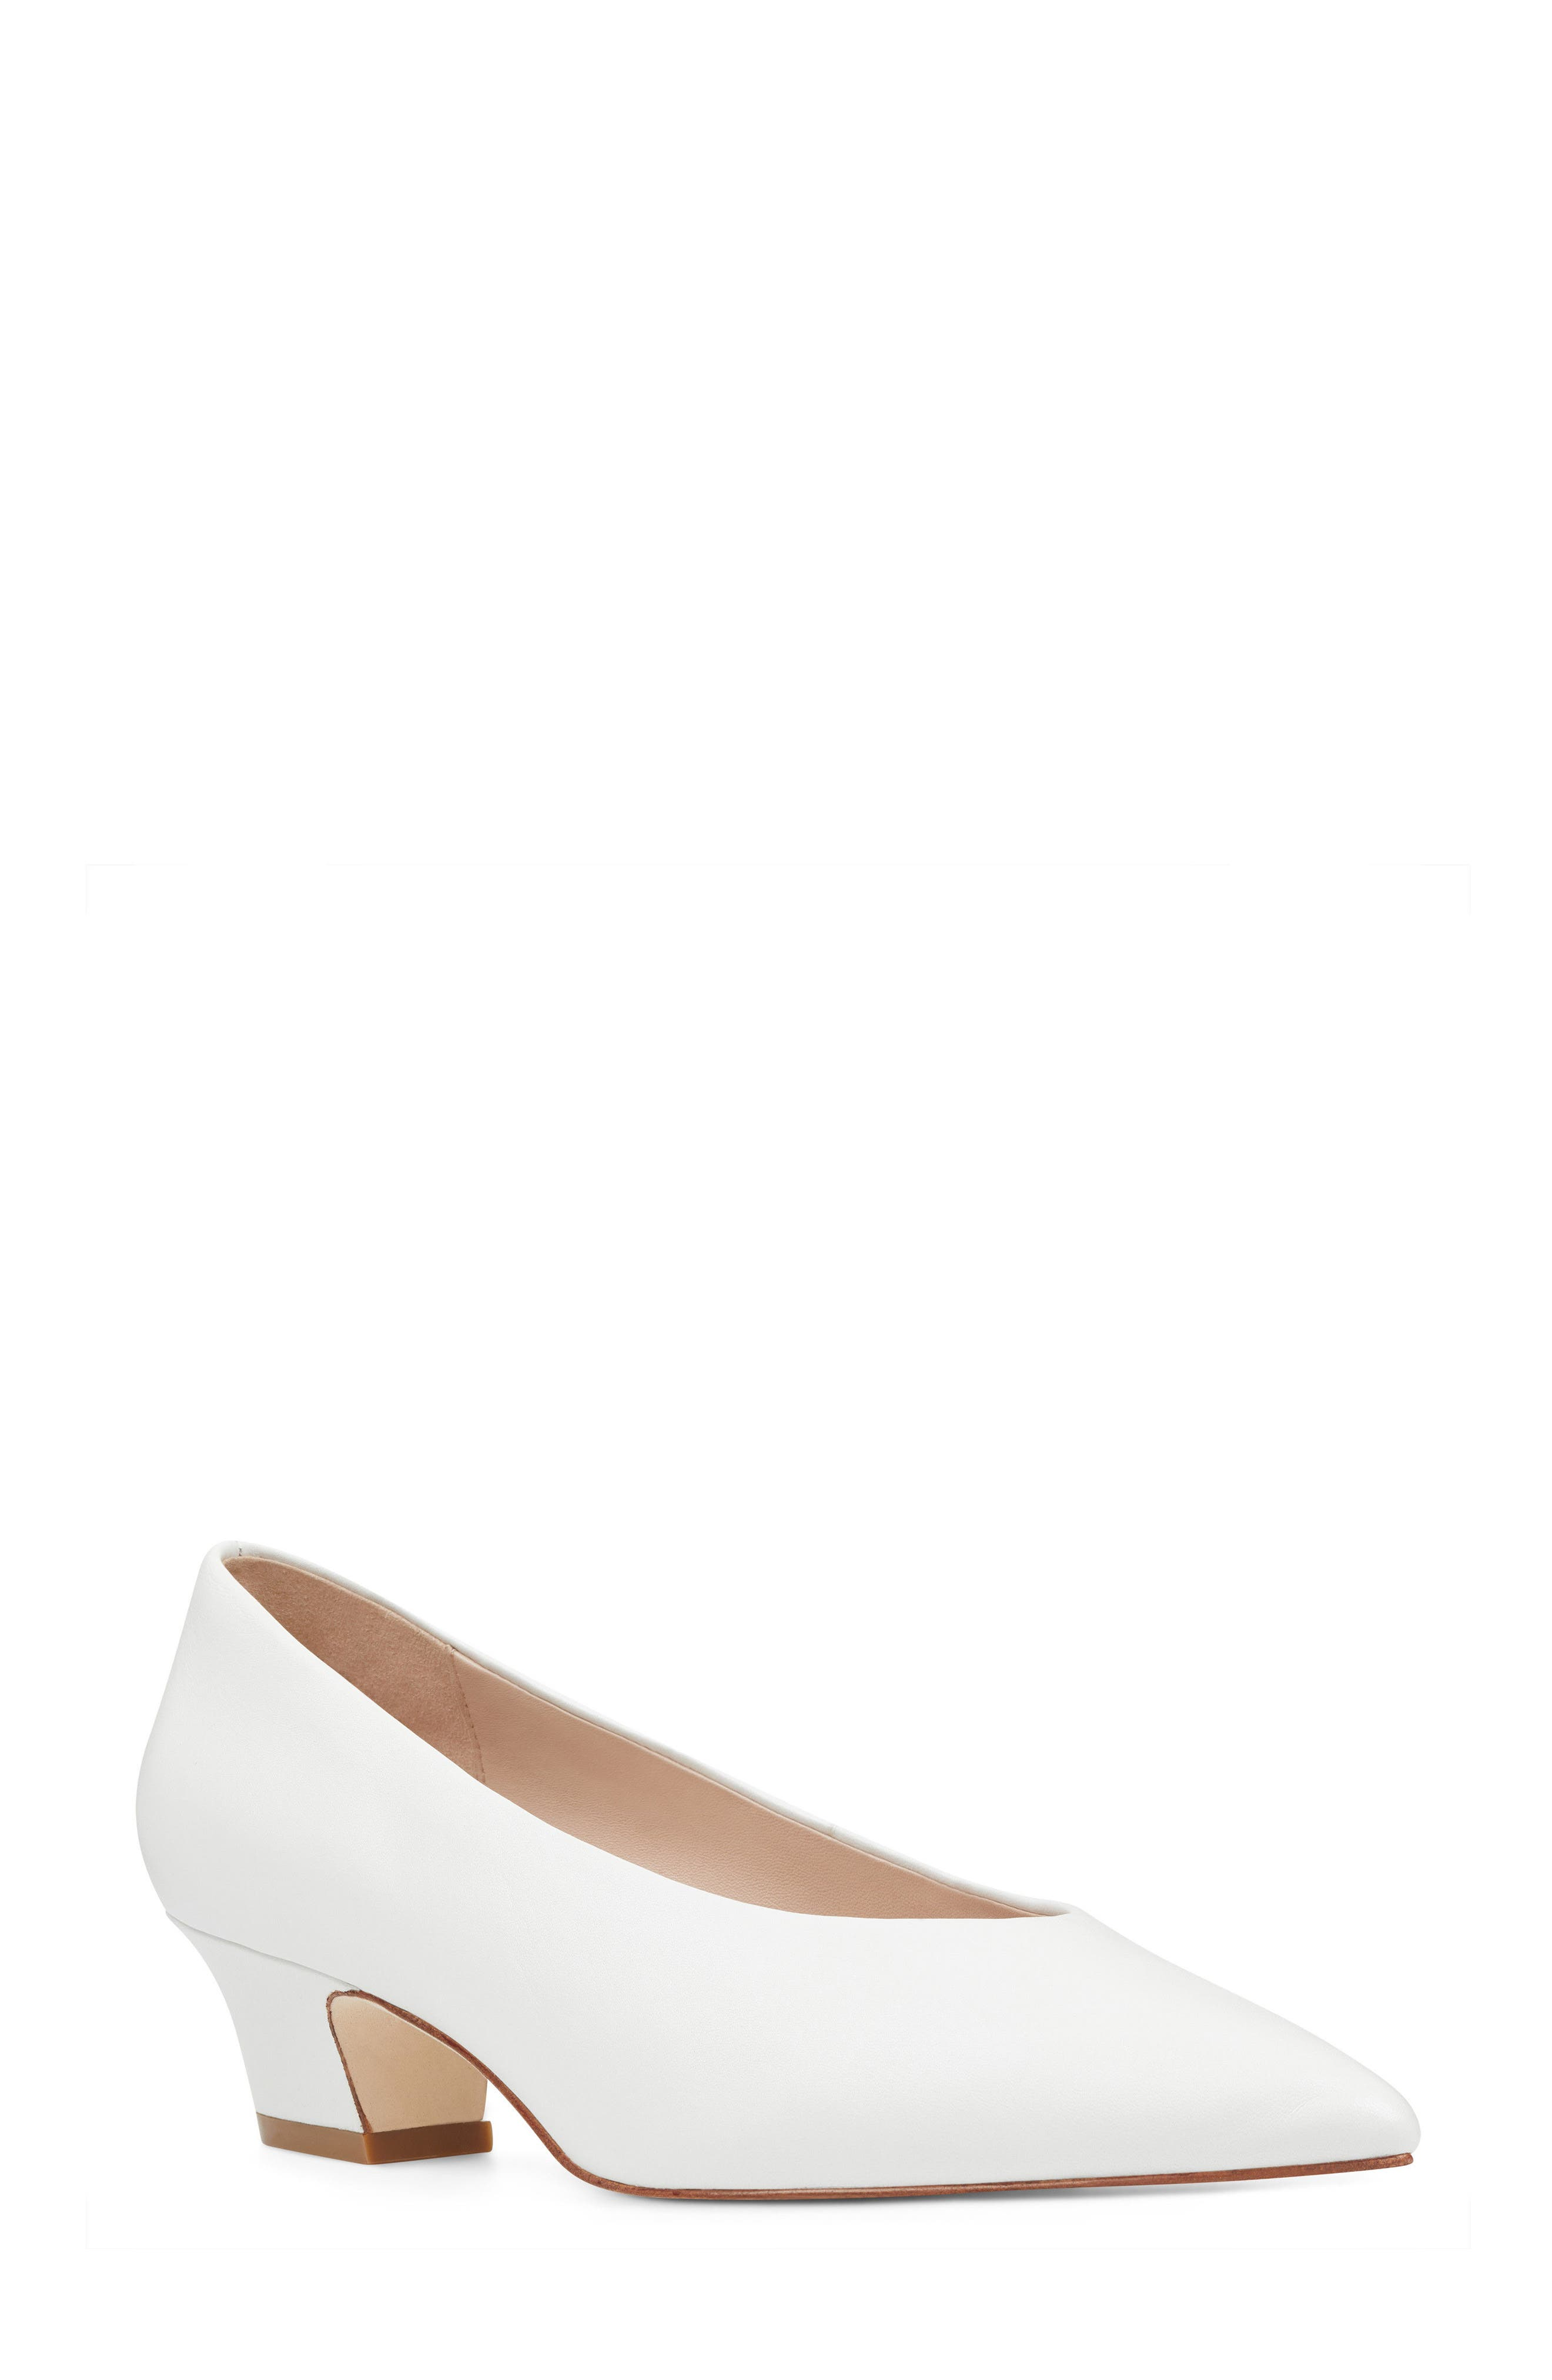 Kendra - 40th Anniversary Capsule Collection Pump,                             Main thumbnail 1, color,                             White Leather